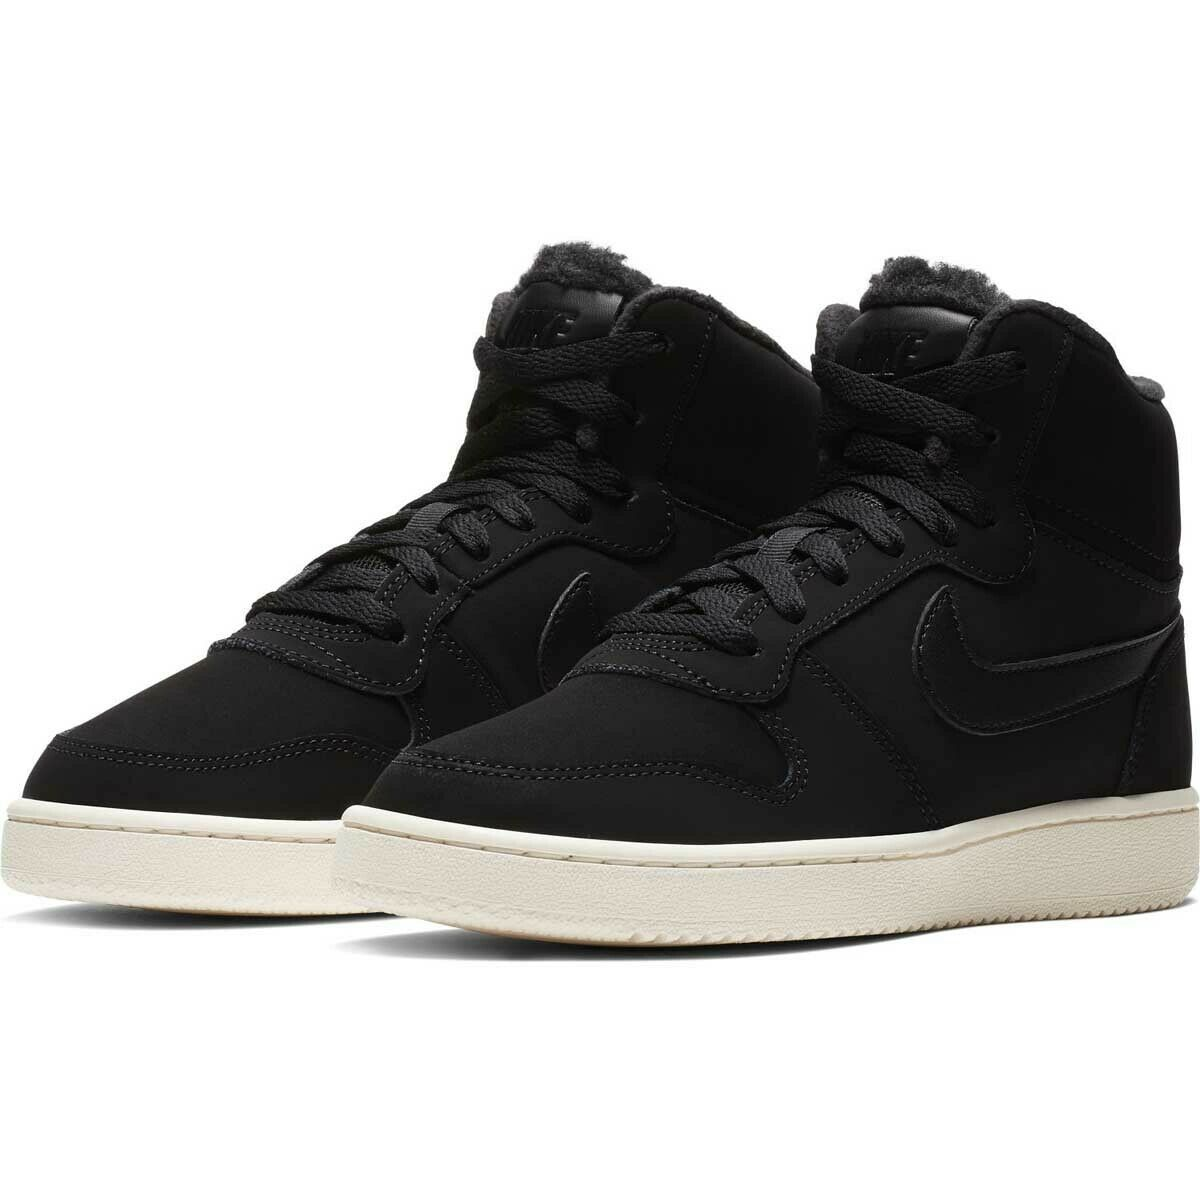 Nike Bruin 537333 300 High Top Trainers